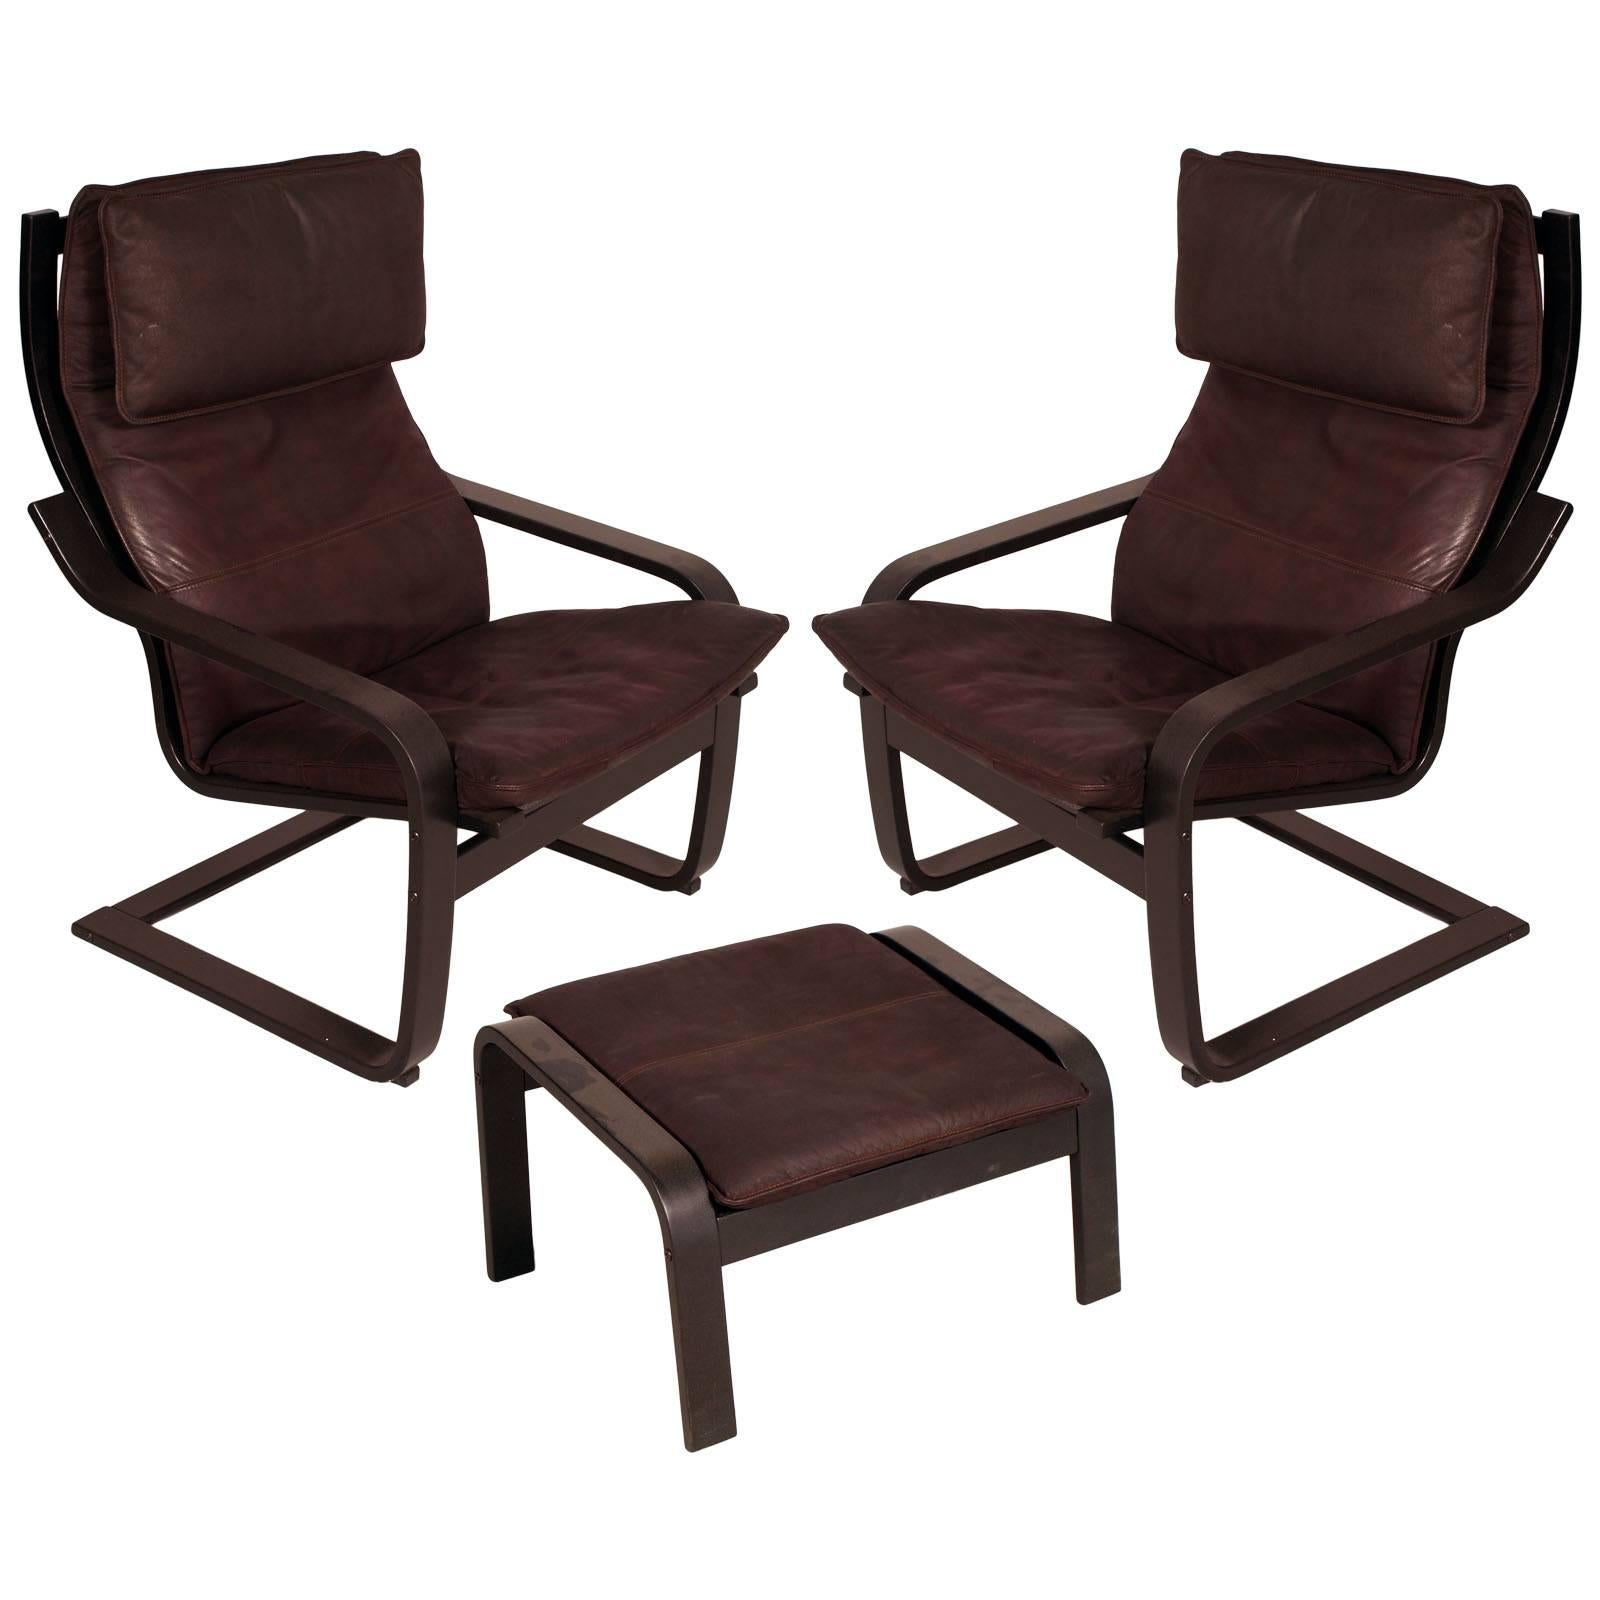 """1970s Set of Leather Cantilever Chairs with Footrest """"Poäng by Noboru Nakamura"""